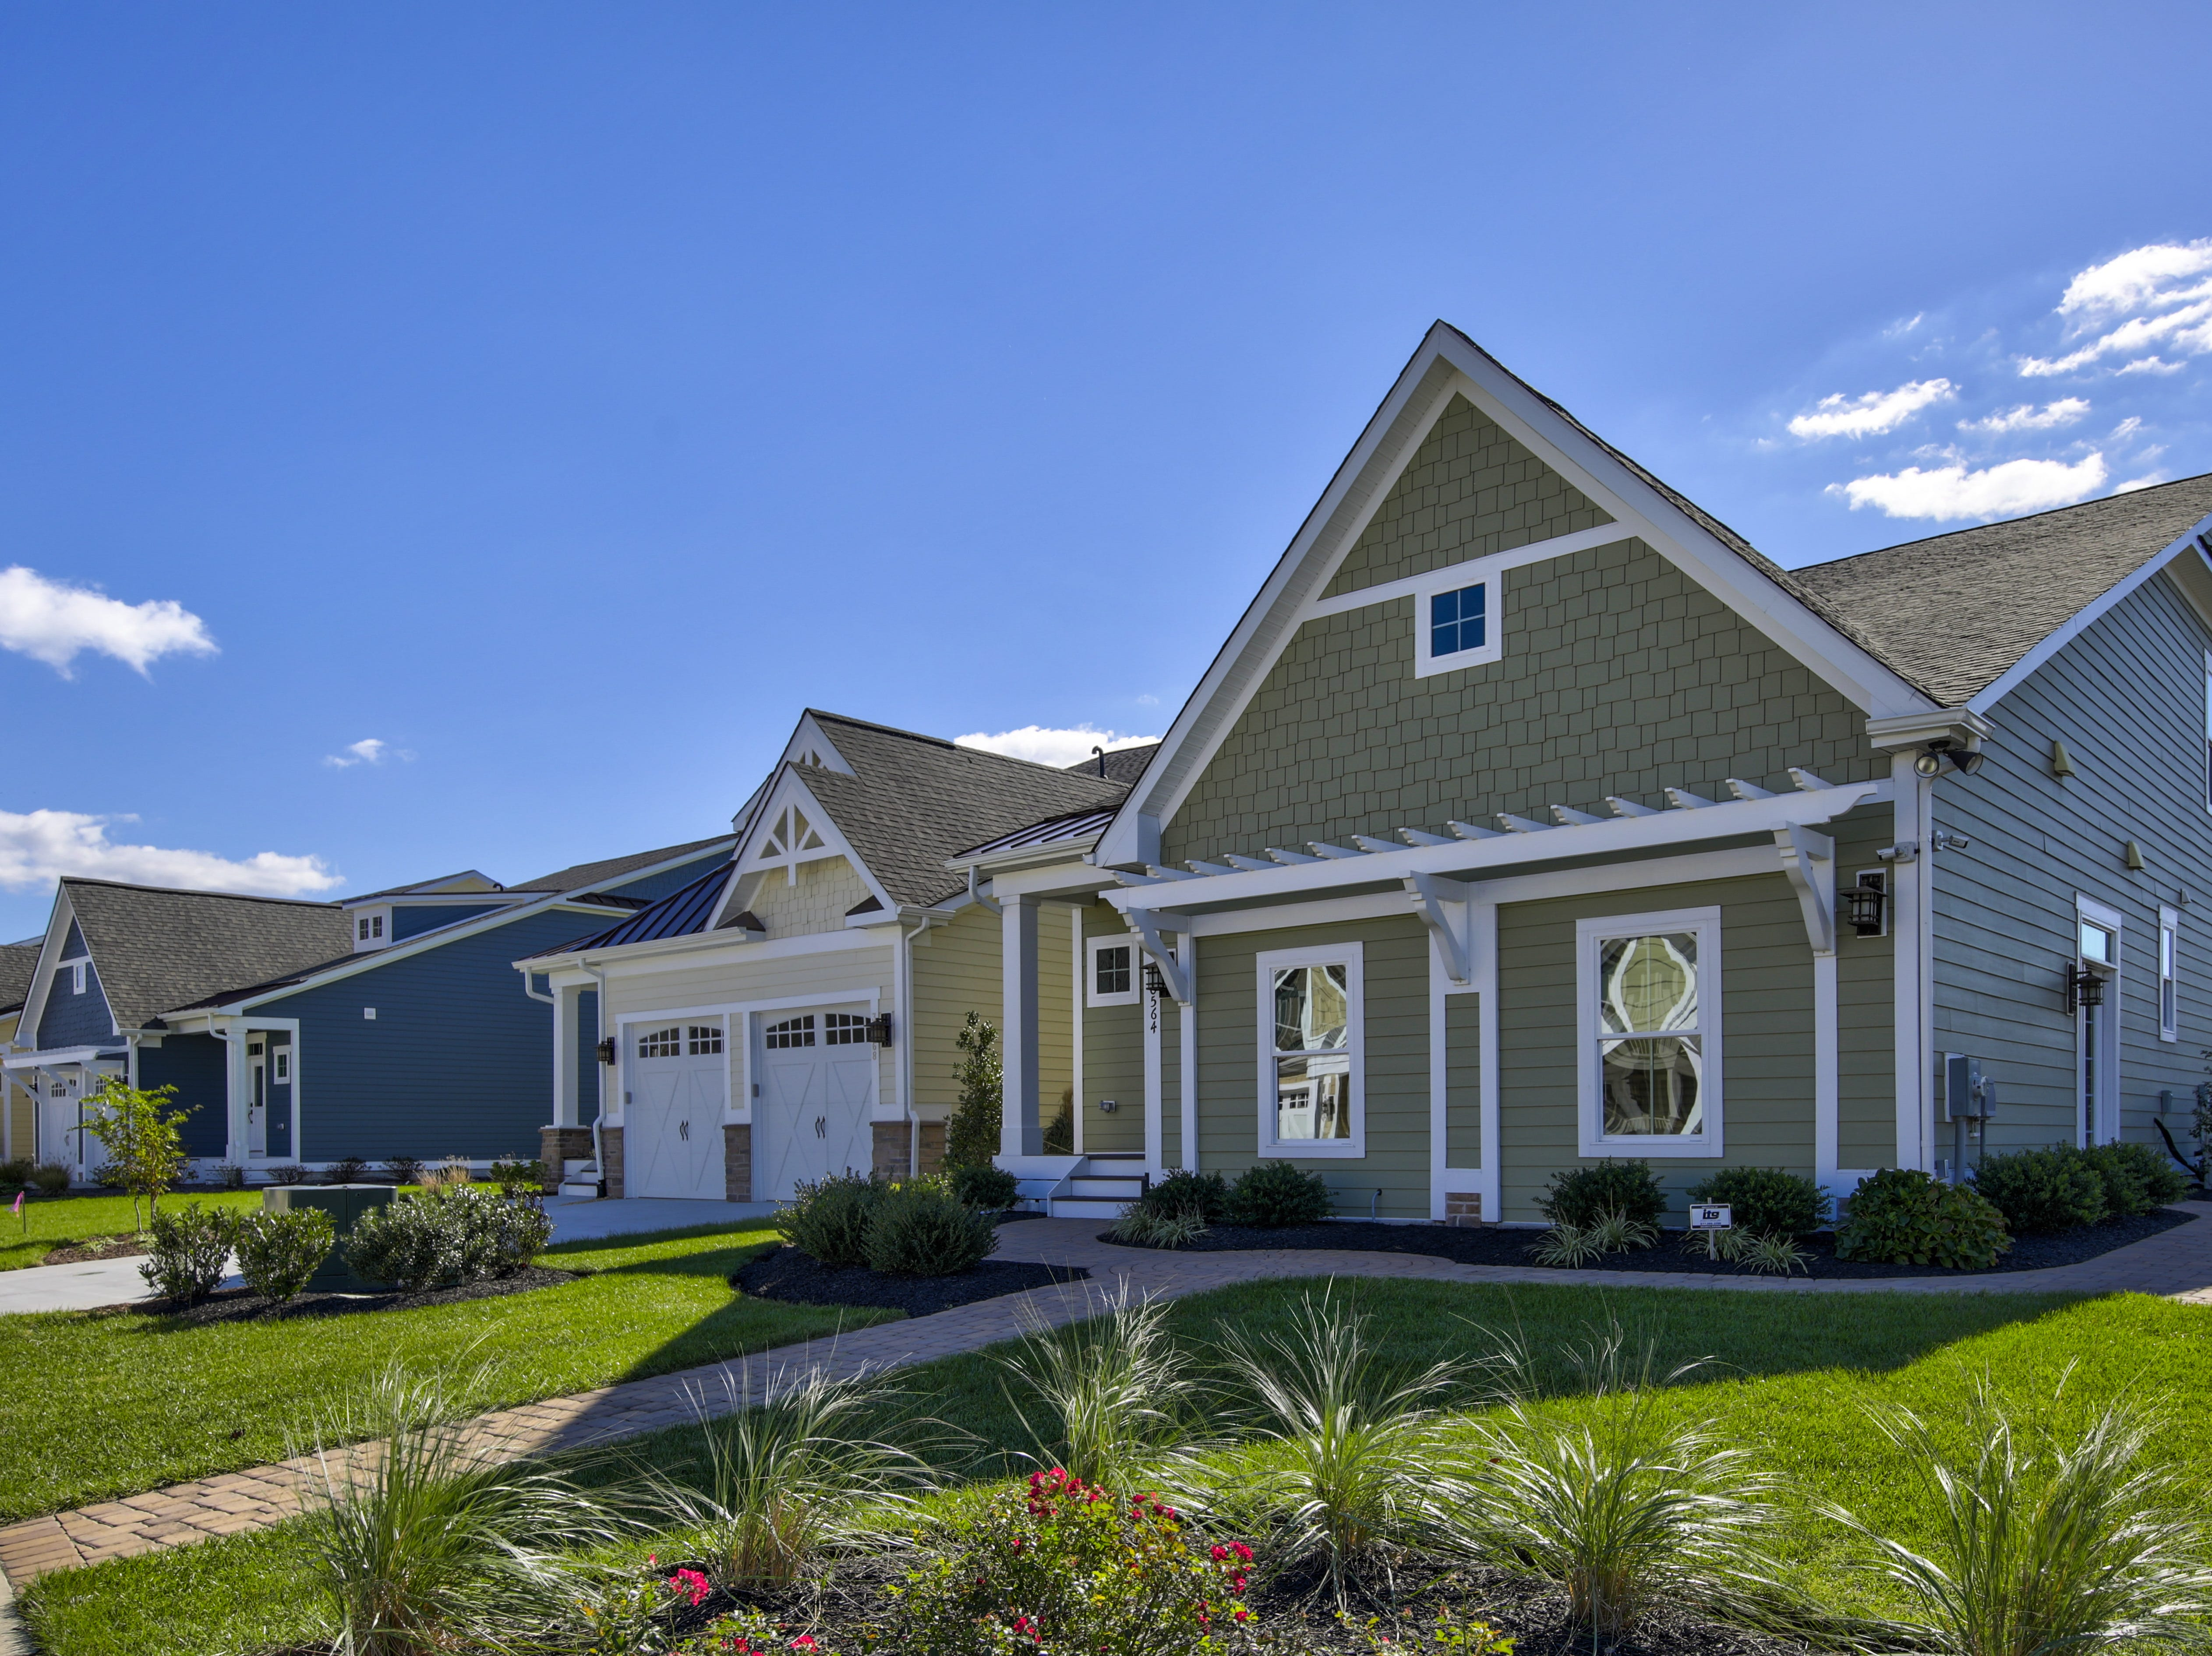 The model home at The Overlook in Selbyville has a two-car garage.